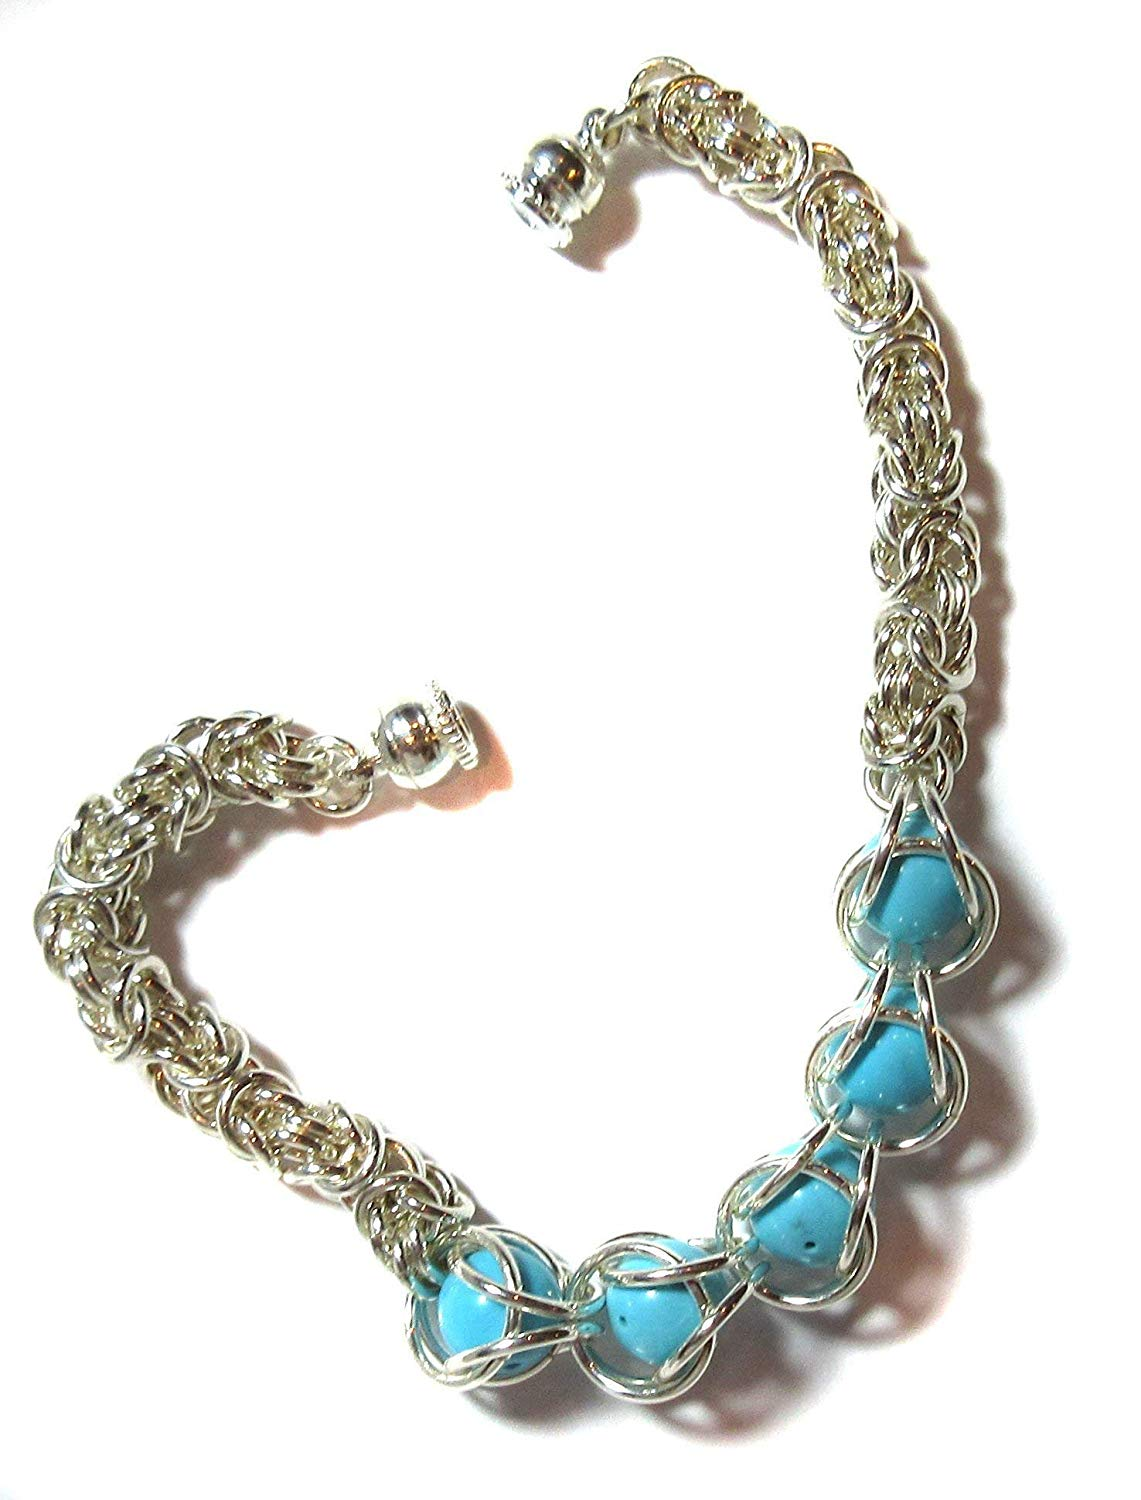 Byzantine Basket Turquoise Gemstone Bracelet Exquisite Ancient Byzantine Link With Free Floating Captured Turquoise Beads Substantial 18 gauge .925 Sterling Silver Toggle Clasp